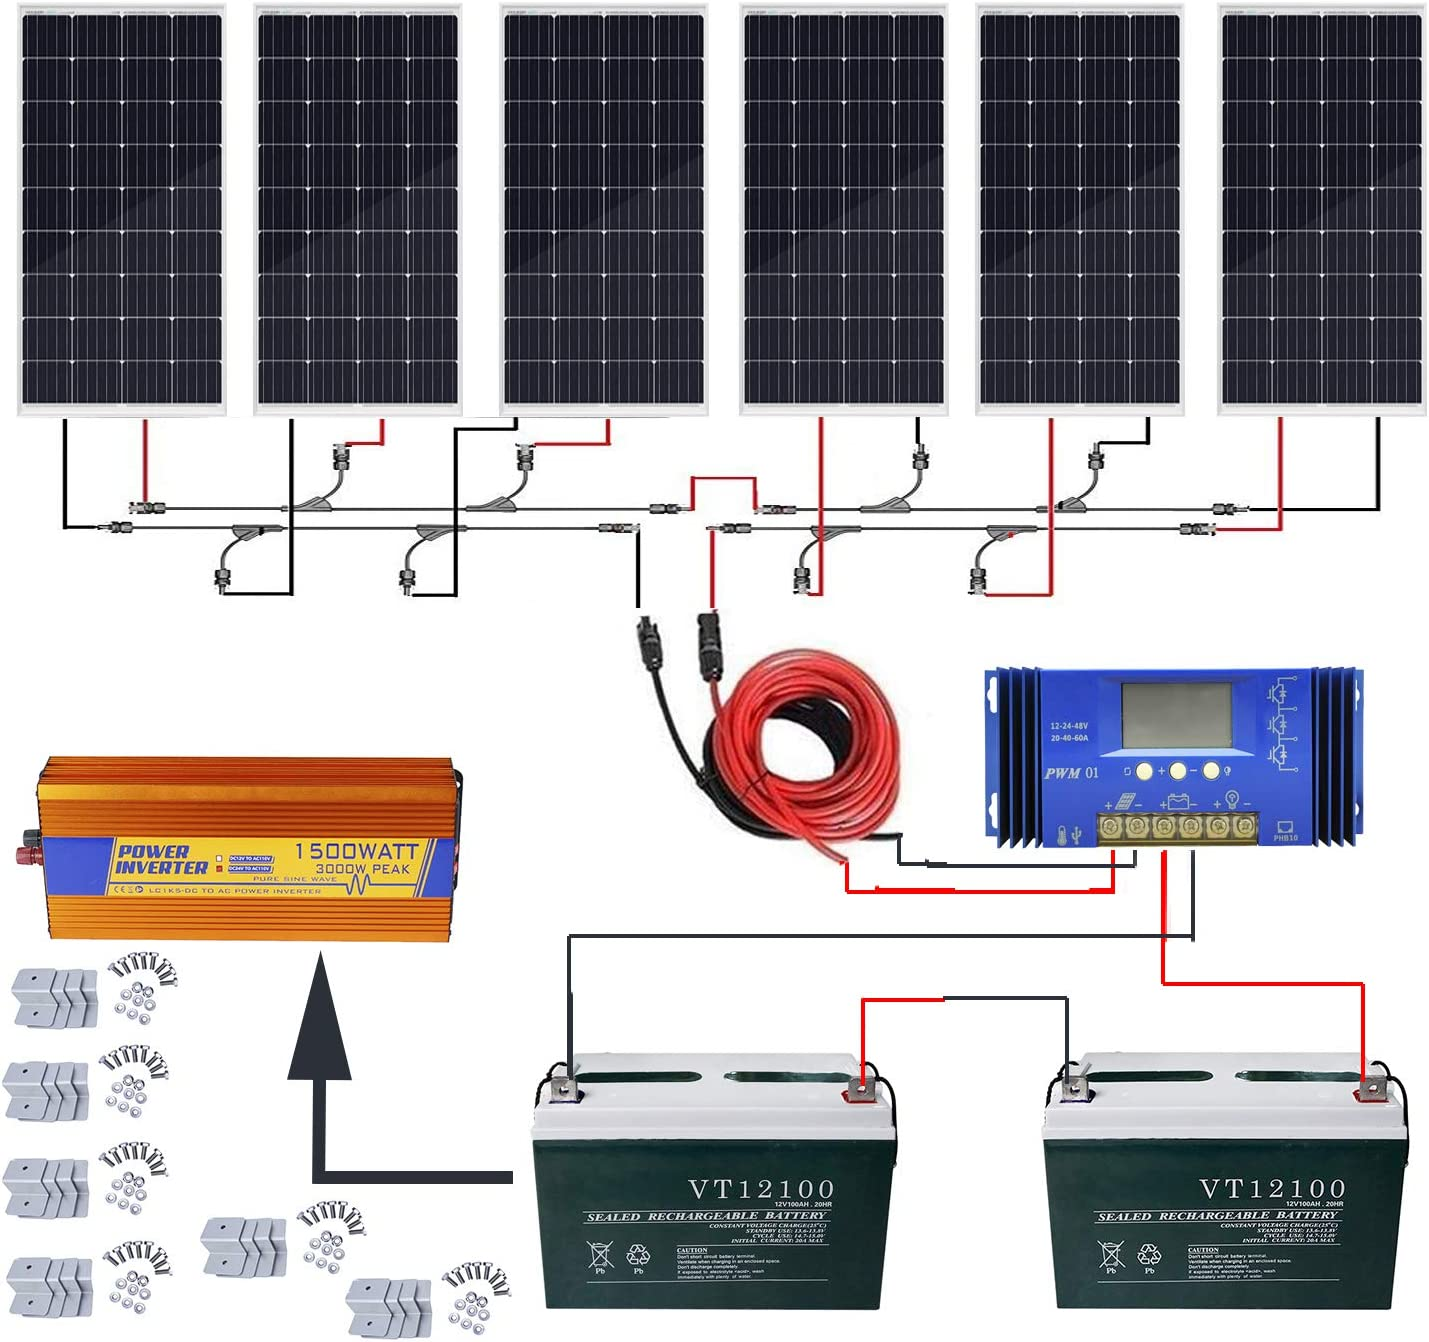 ECO-WORTHY 720W Solar Power System Off Grid 6pcs 120W Mono Solar Panel 60A Charge Controller 200Ah 12V Sealed Lead-Acid Battery 1500W Pure Sine Wave Inverter Solar Cable Z Mounting Brackets